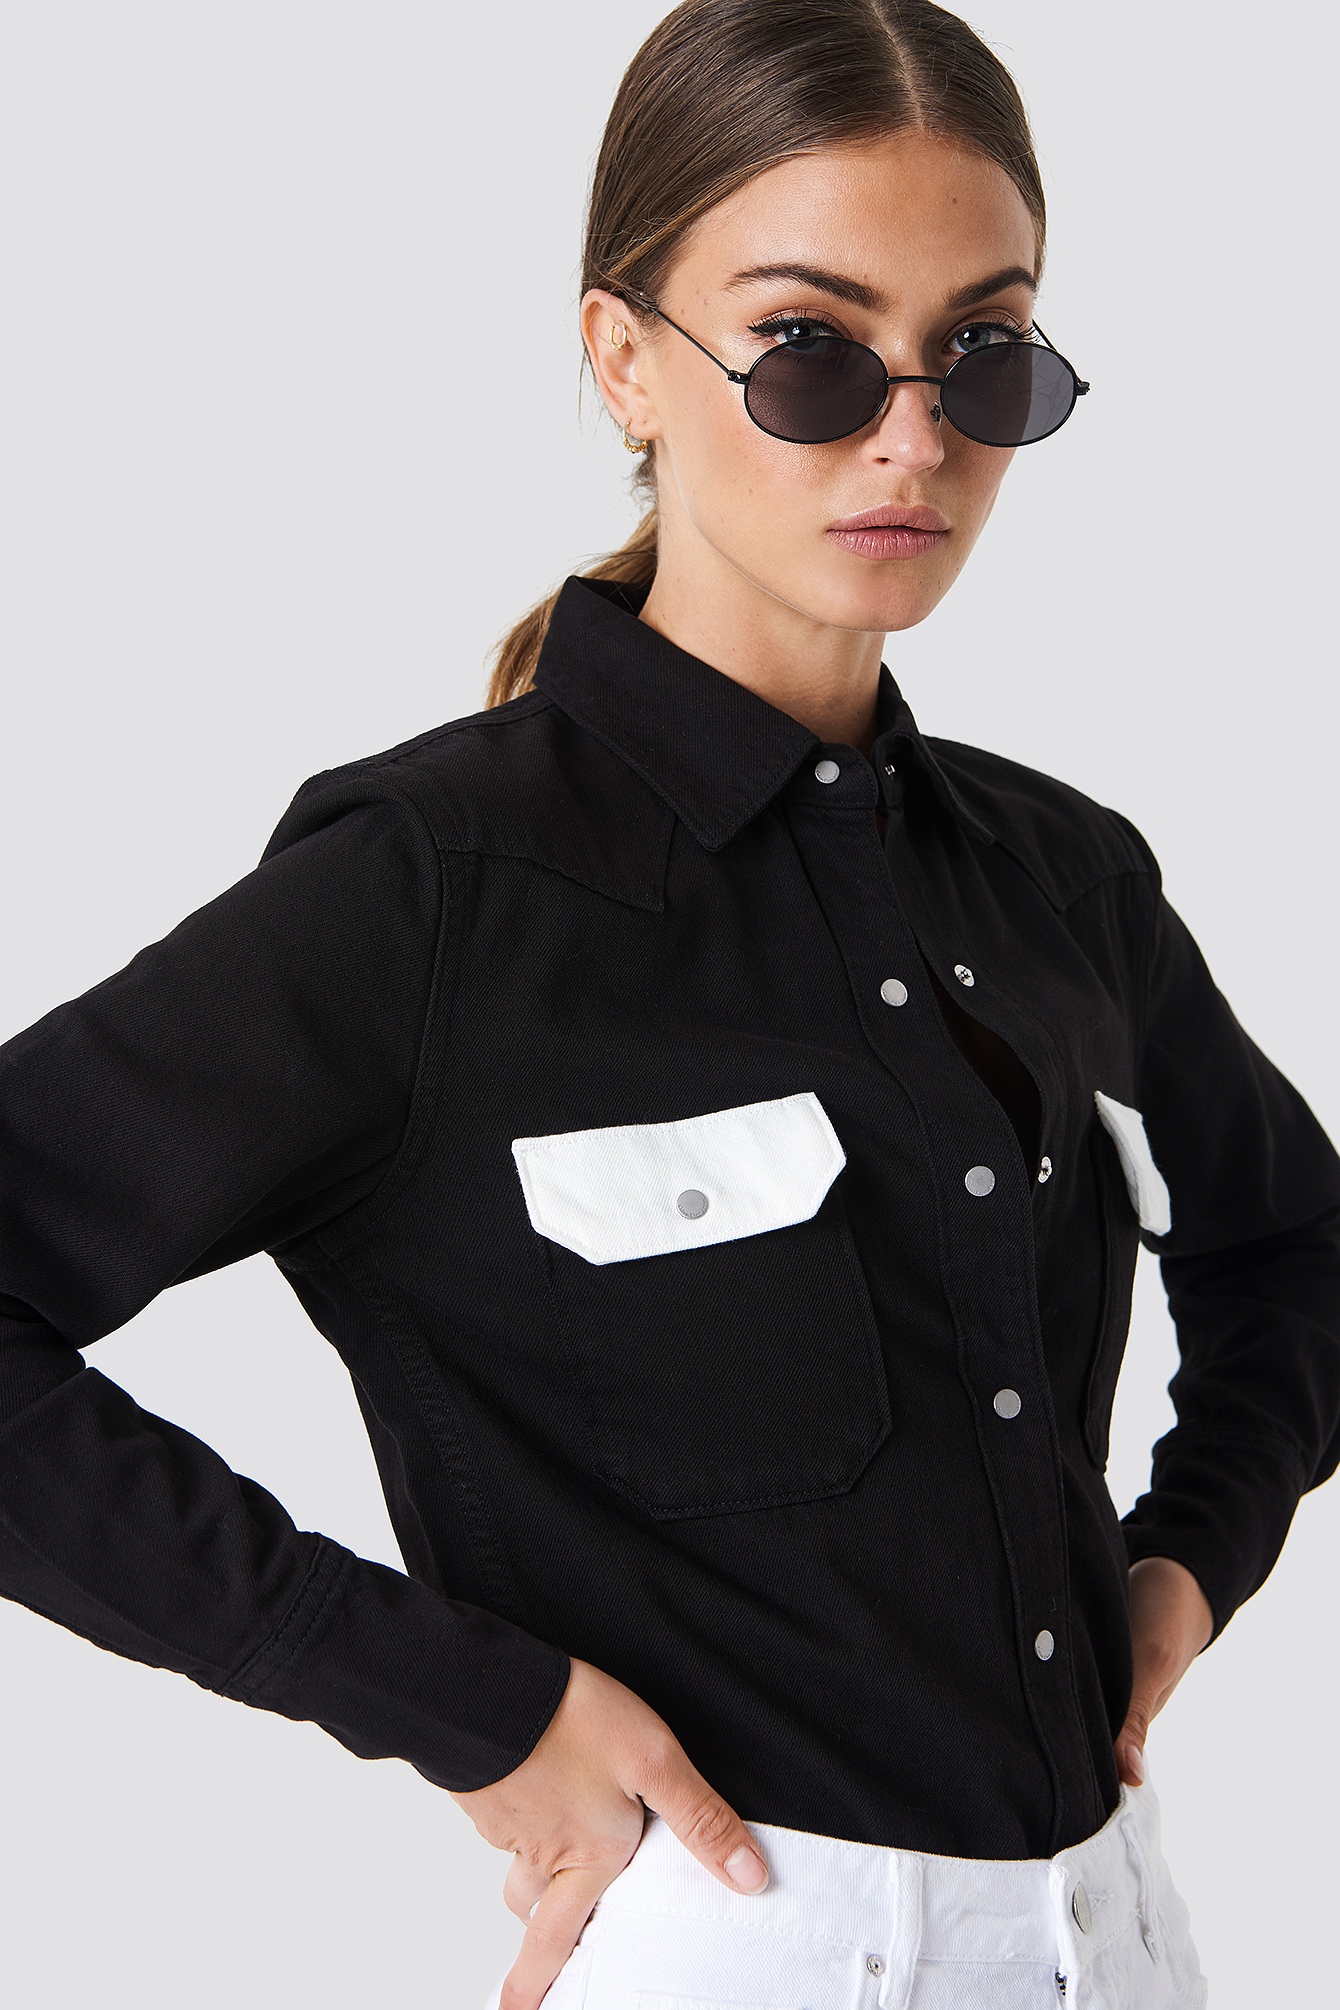 WESTERN LEAN CONTRAST SHIRT - BLACK